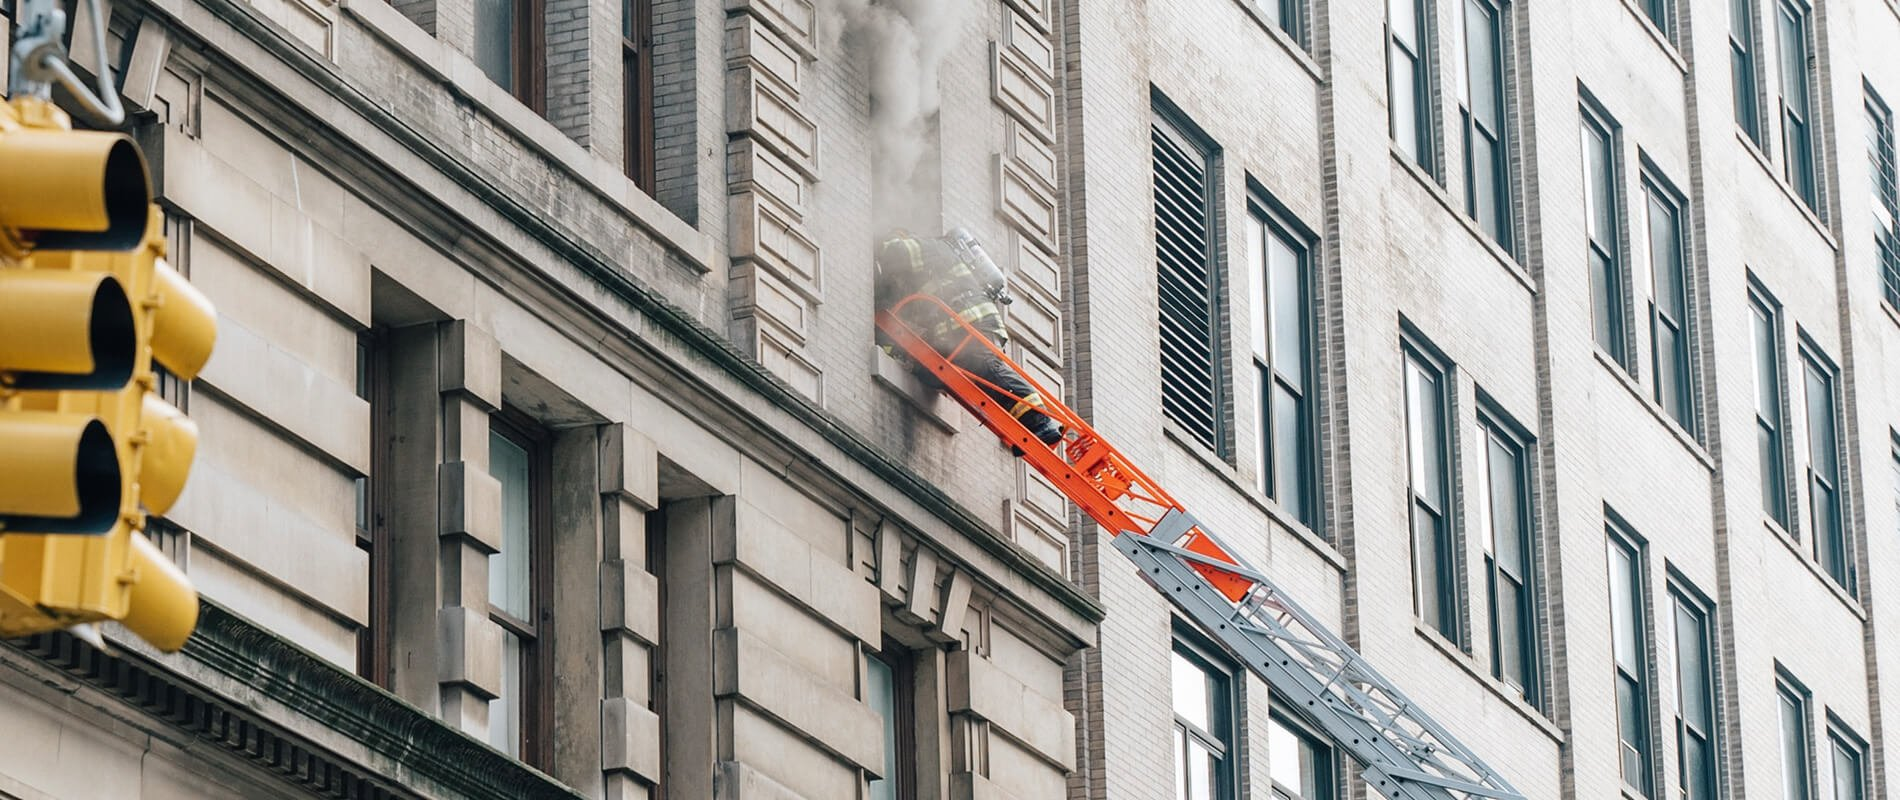 firefighter on ladder on building - self closing door hinge fire security systems installation nh